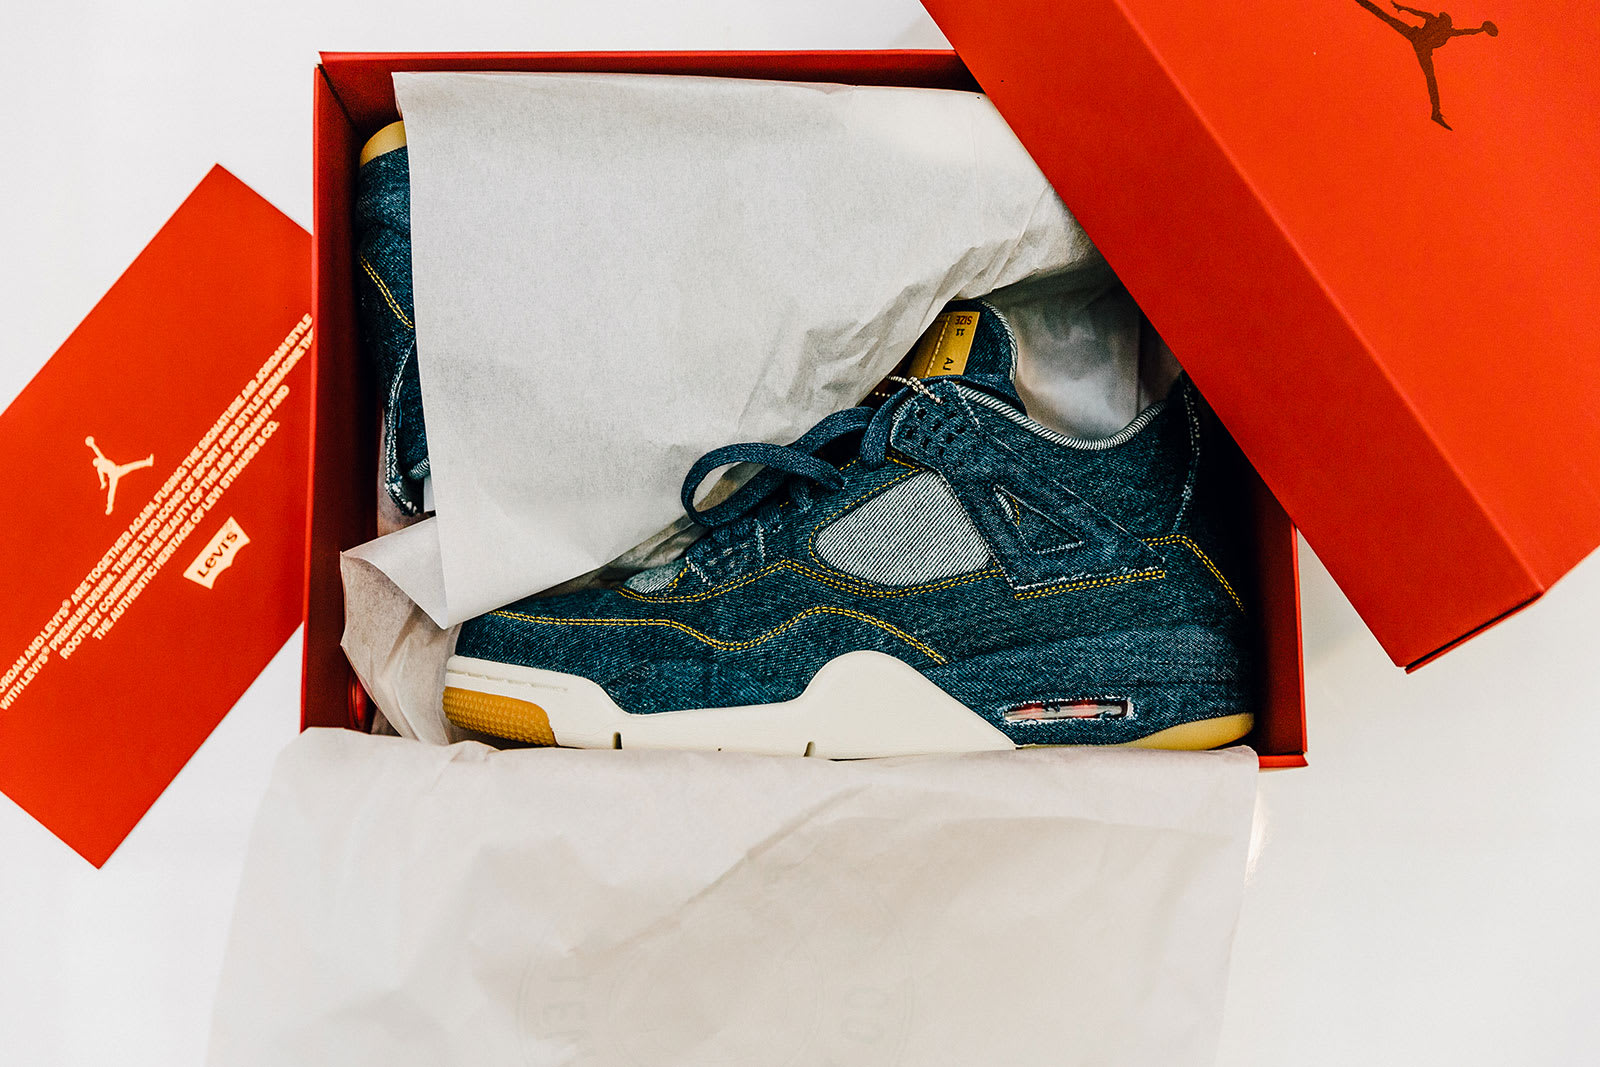 END. Features | Levi's x Air Jordan 4 Retro Launching 17th